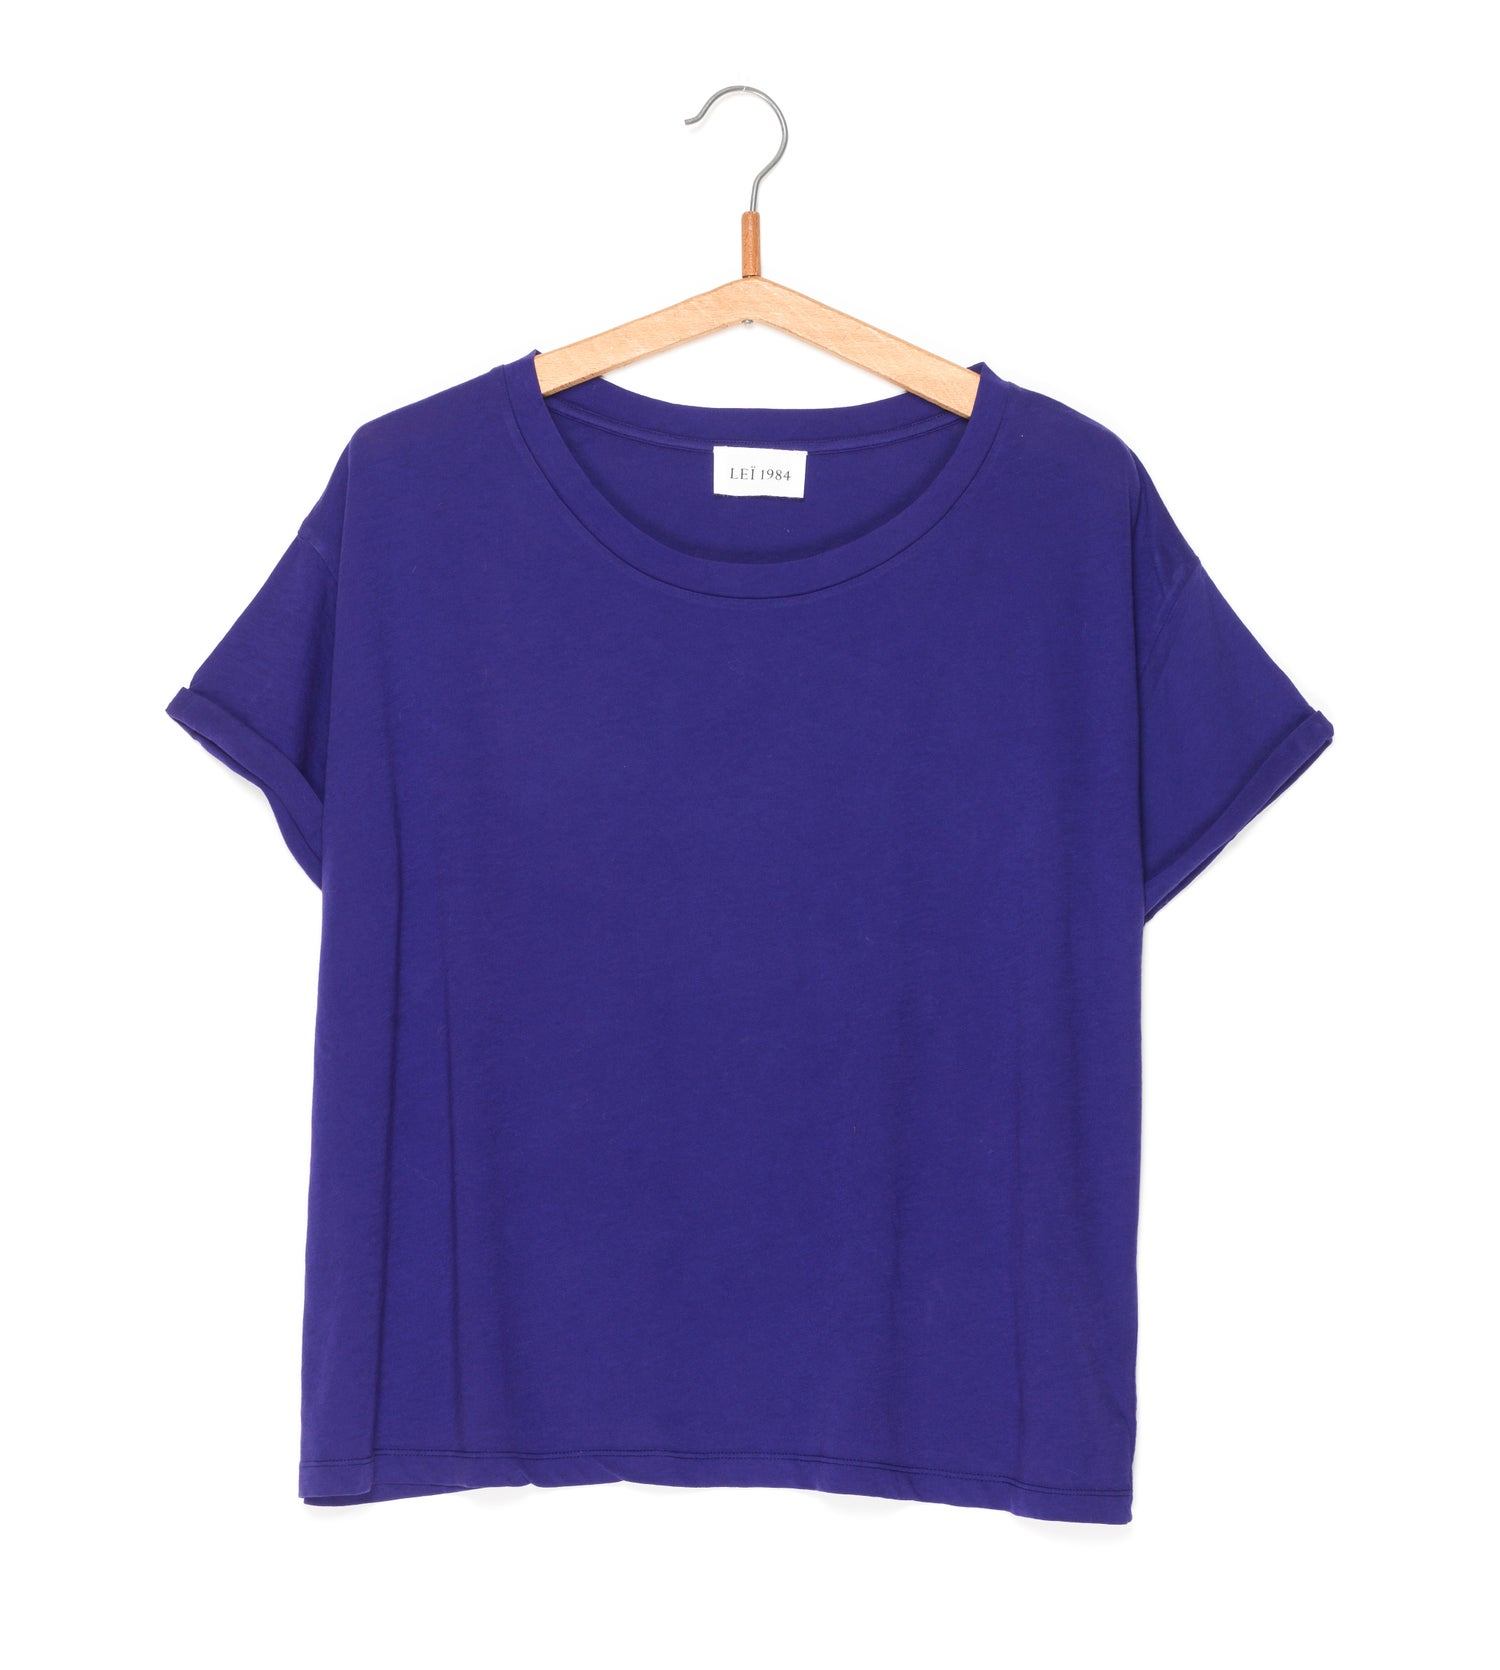 Image of Tee-shirt jersey GABRIELLE coloris primaires